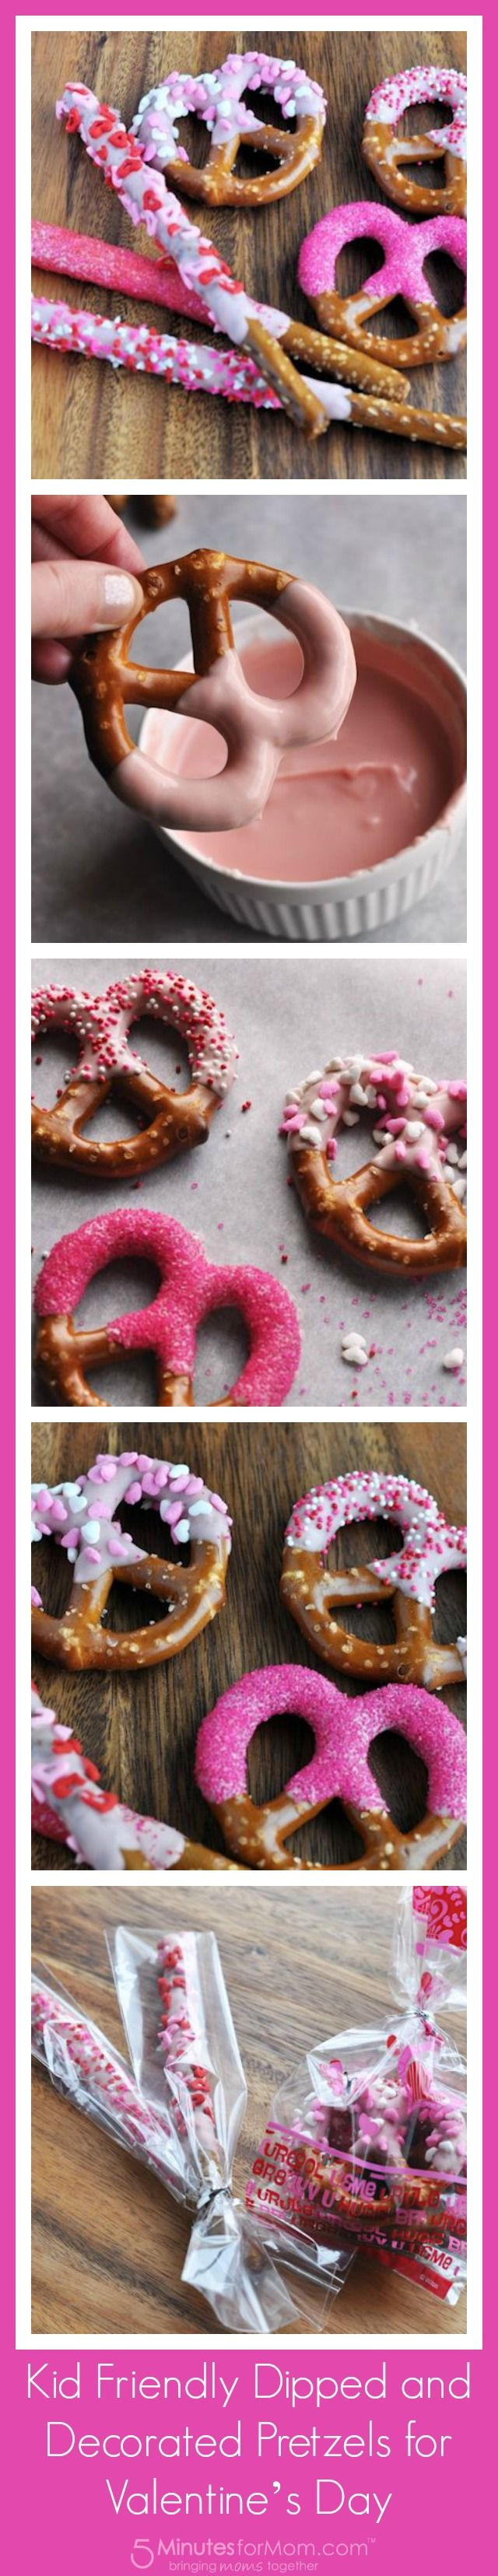 Kid Friendly Dipped and Decorated Pretzels for Valentine's Day - kid friendly... Maybe Jen friendly!